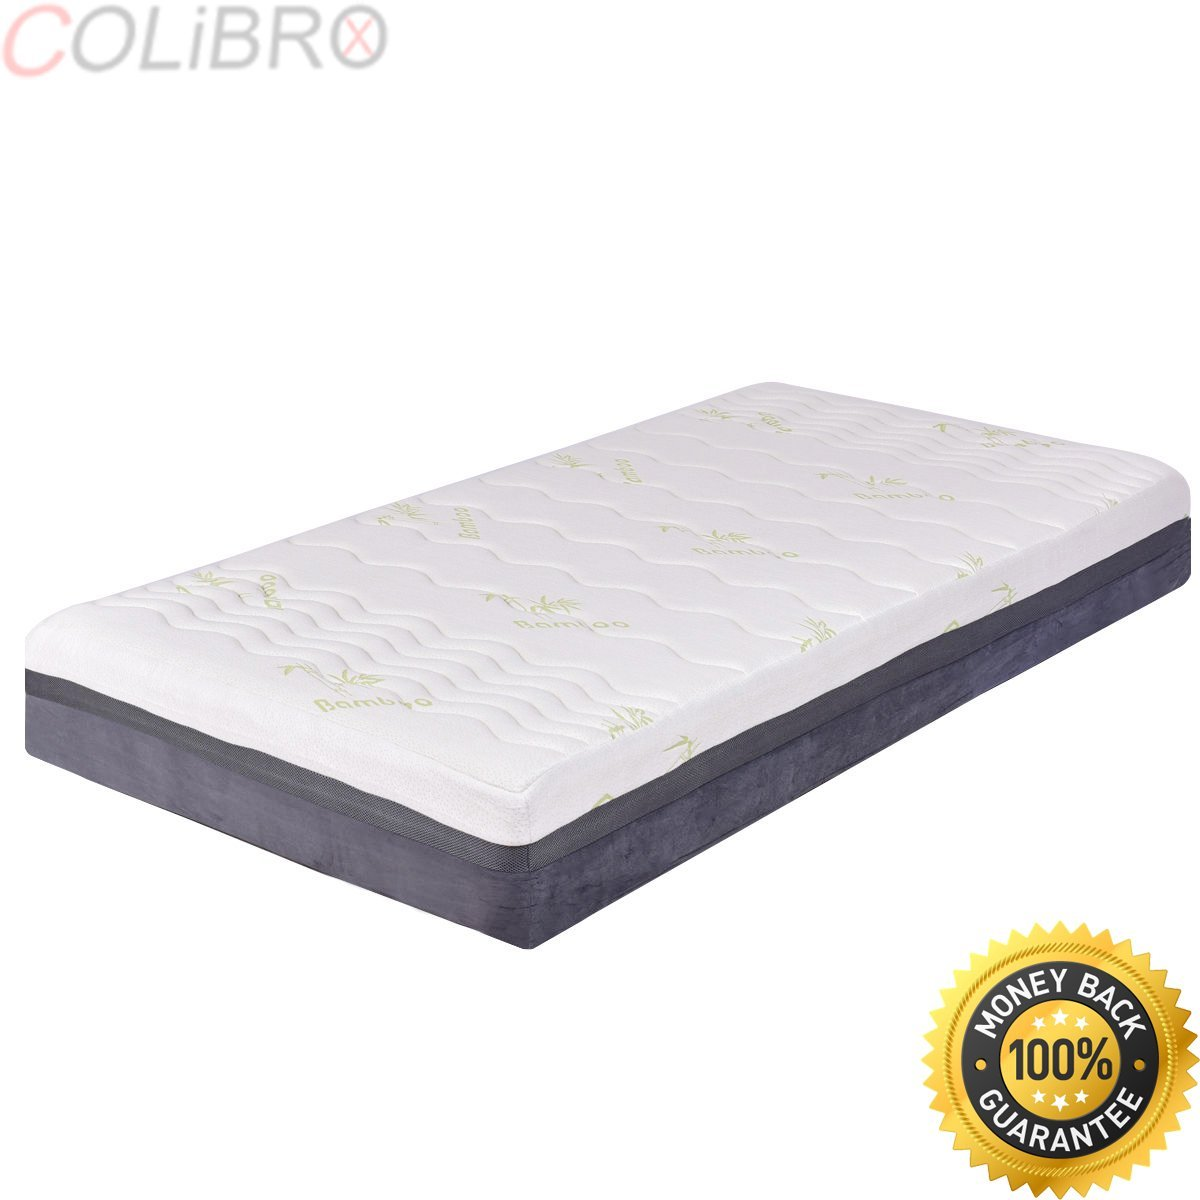 Bamboo Mattress Topper Review Cheap Bed Bath Mattress Pad Find Bed Bath Mattress Pad Deals On